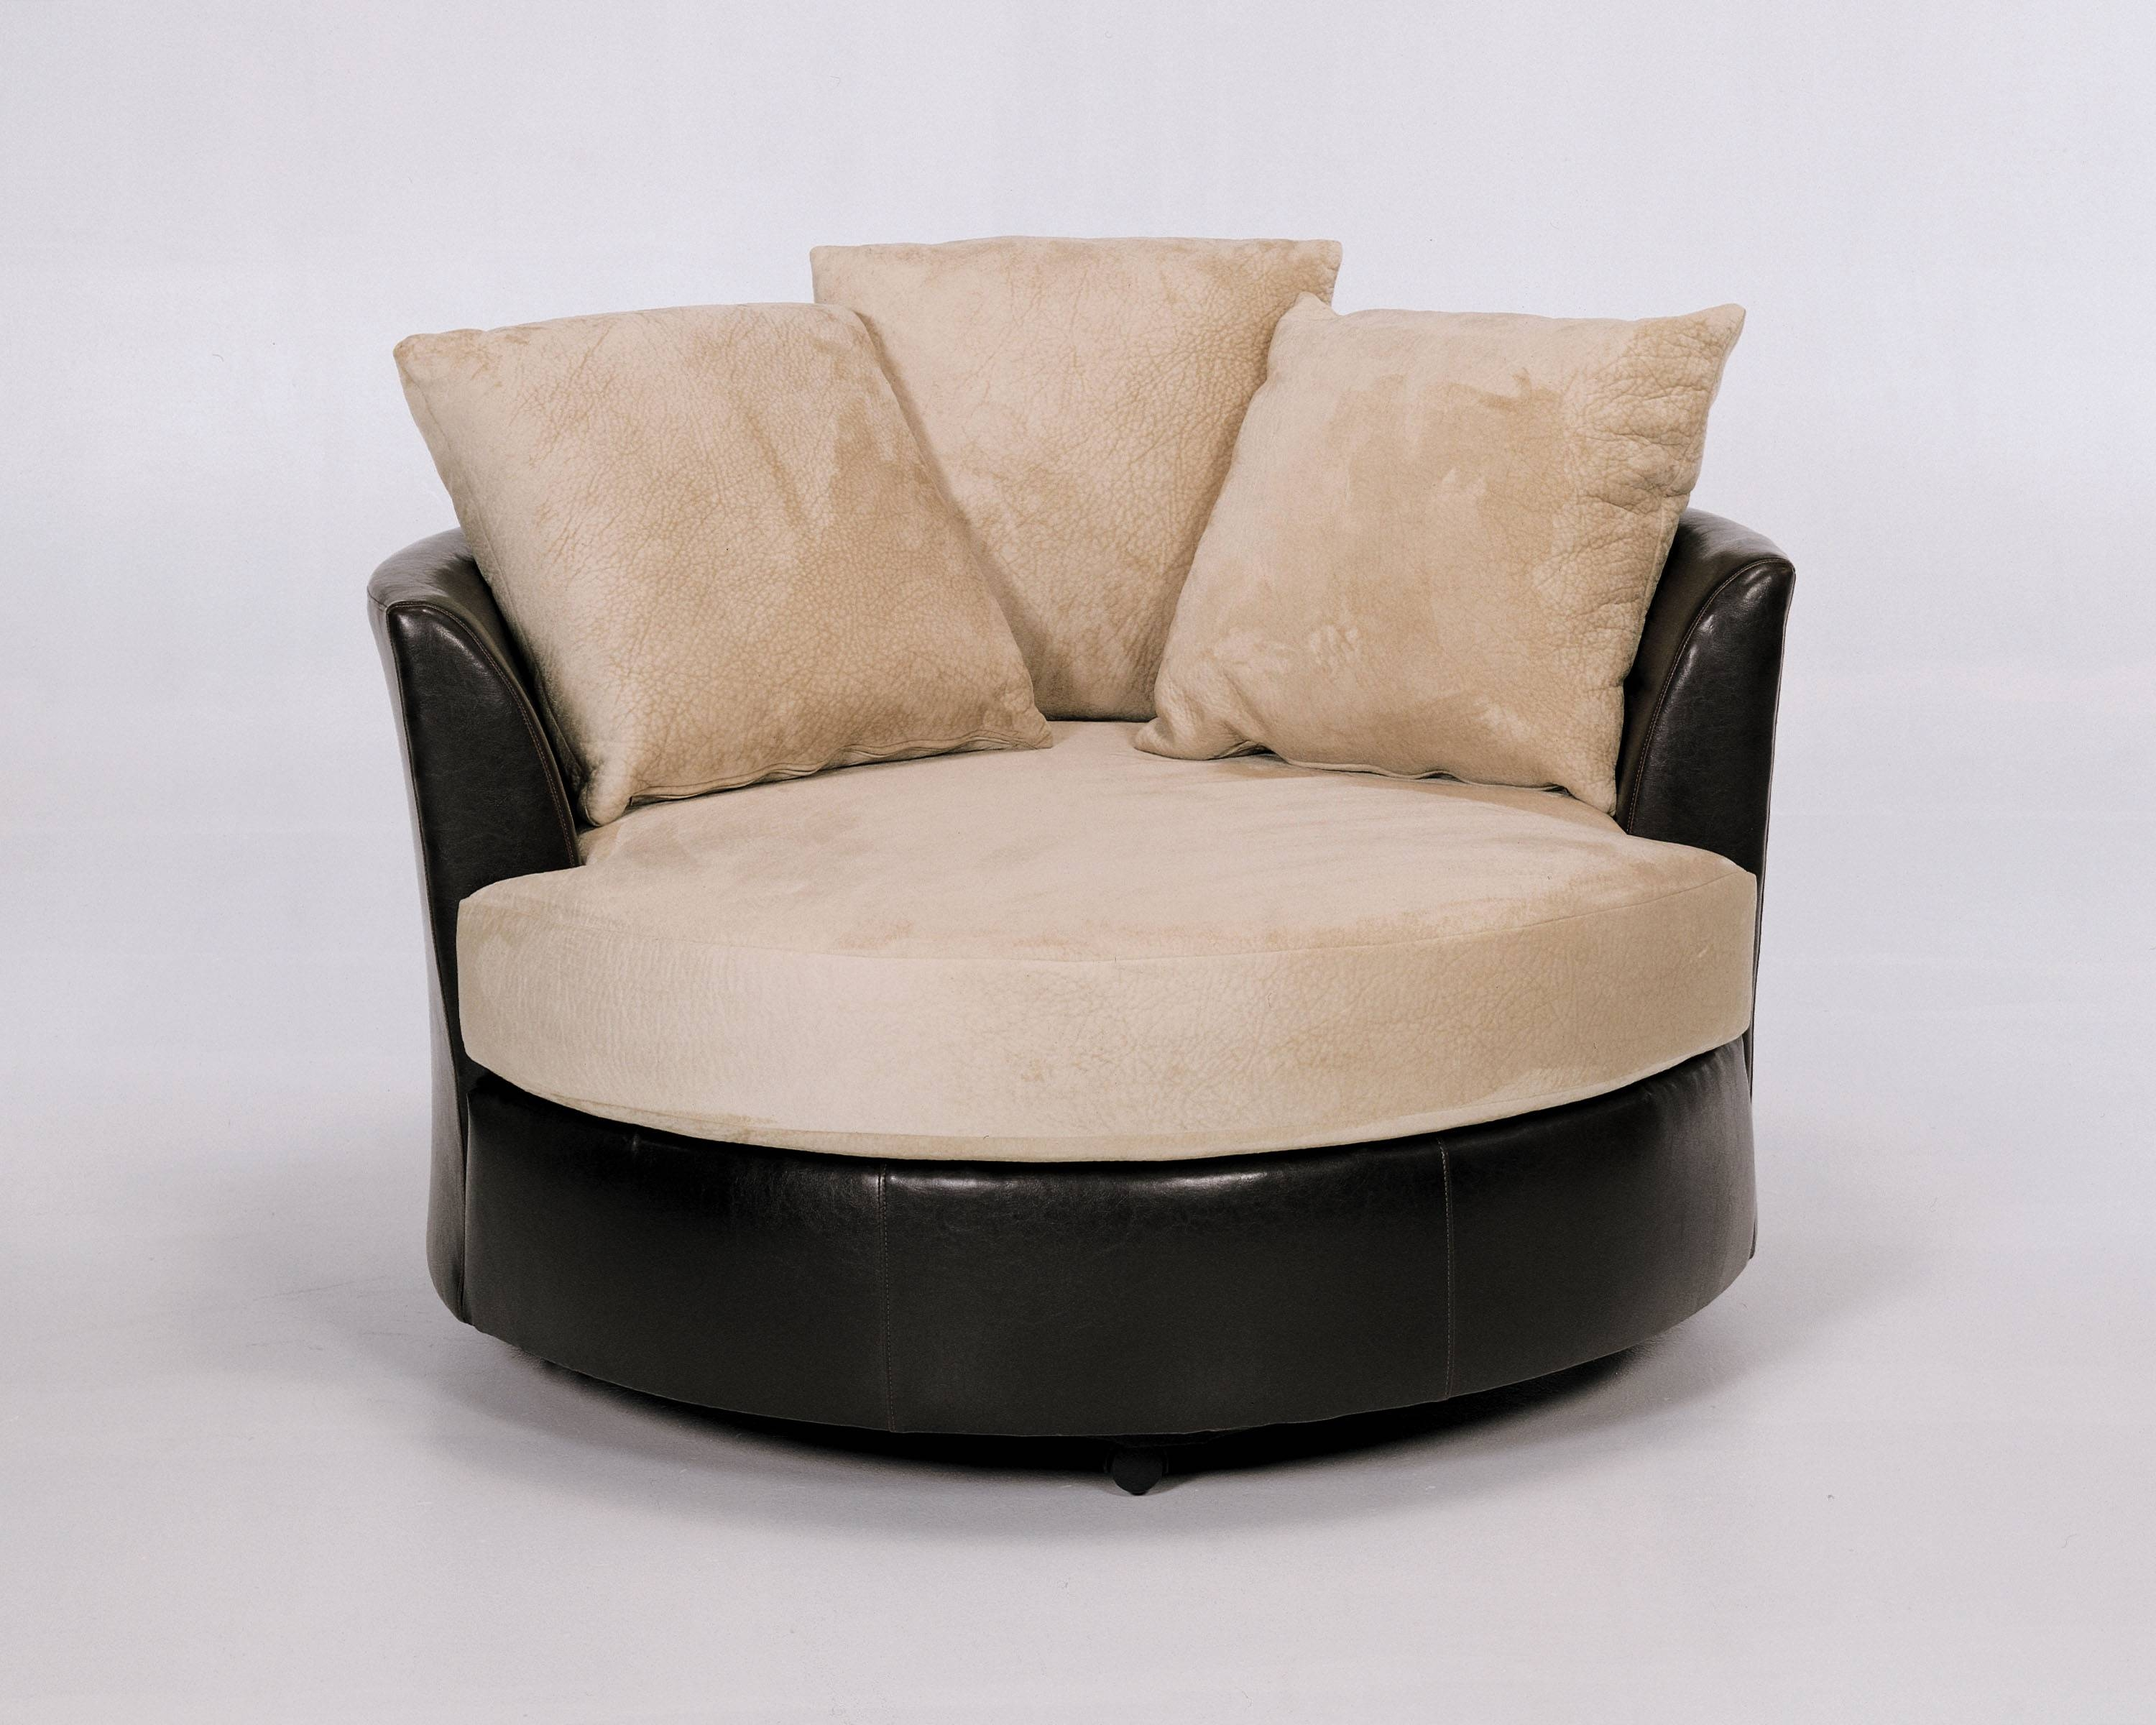 Robert Michael 9645 Cuddler Swivel Chair intended for Cuddler Swivel Sofa Chairs (Image 18 of 30)